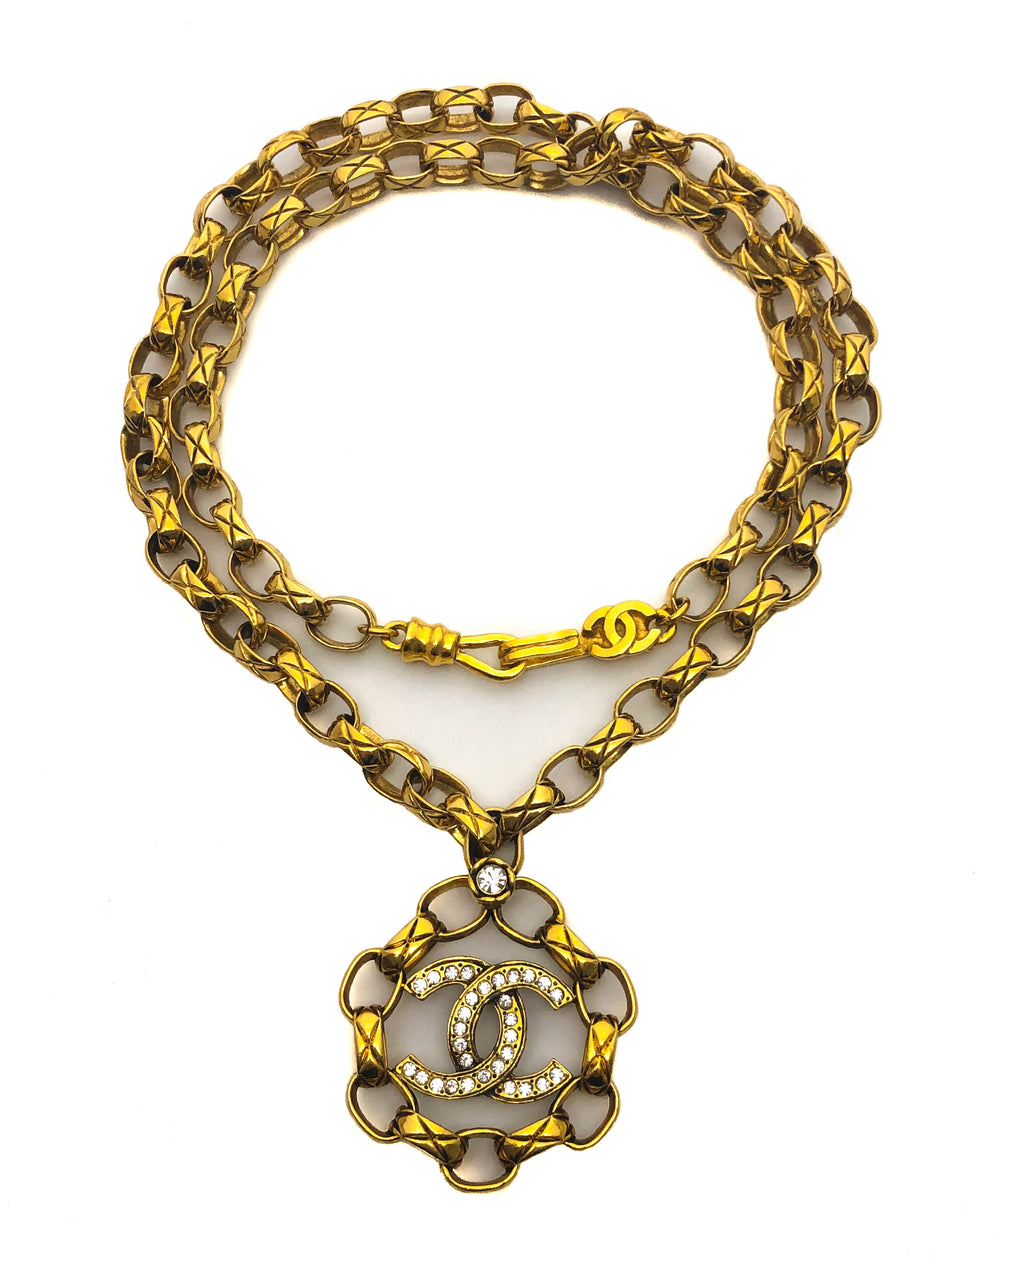 Chanel Vintage Rare Crystal Large Pendant Necklace